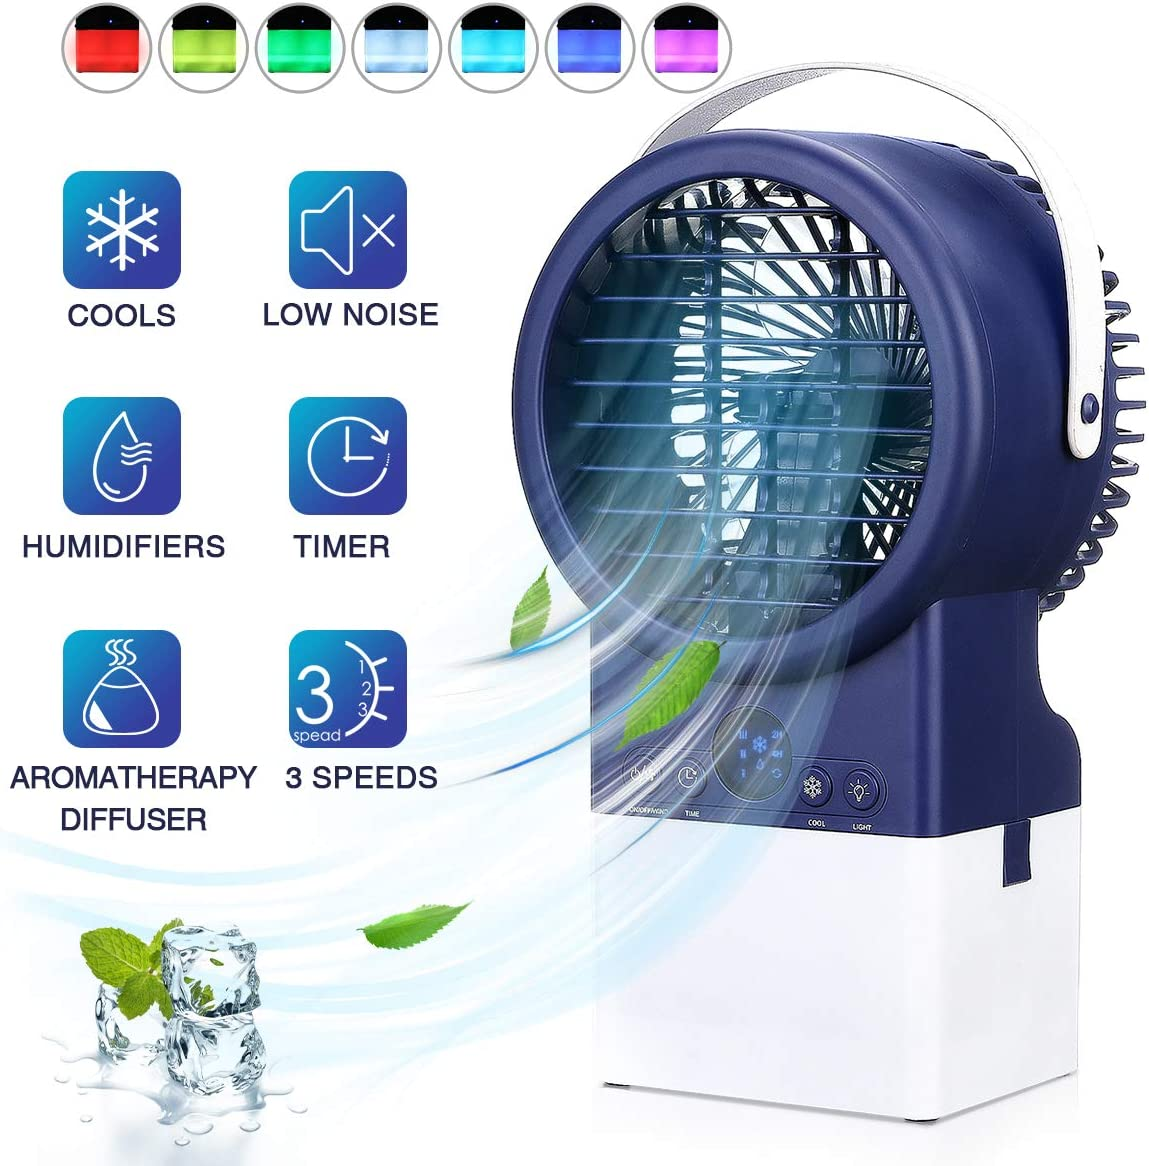 Jeteven Portable Air Conditioner Fan Personal Air Cooler Space Charging Mini Air Conditioner Desk Fan Air Purifier Humidifier with 3 Wind Speeds, 7 Colors LED Lights for Home, Room, Office